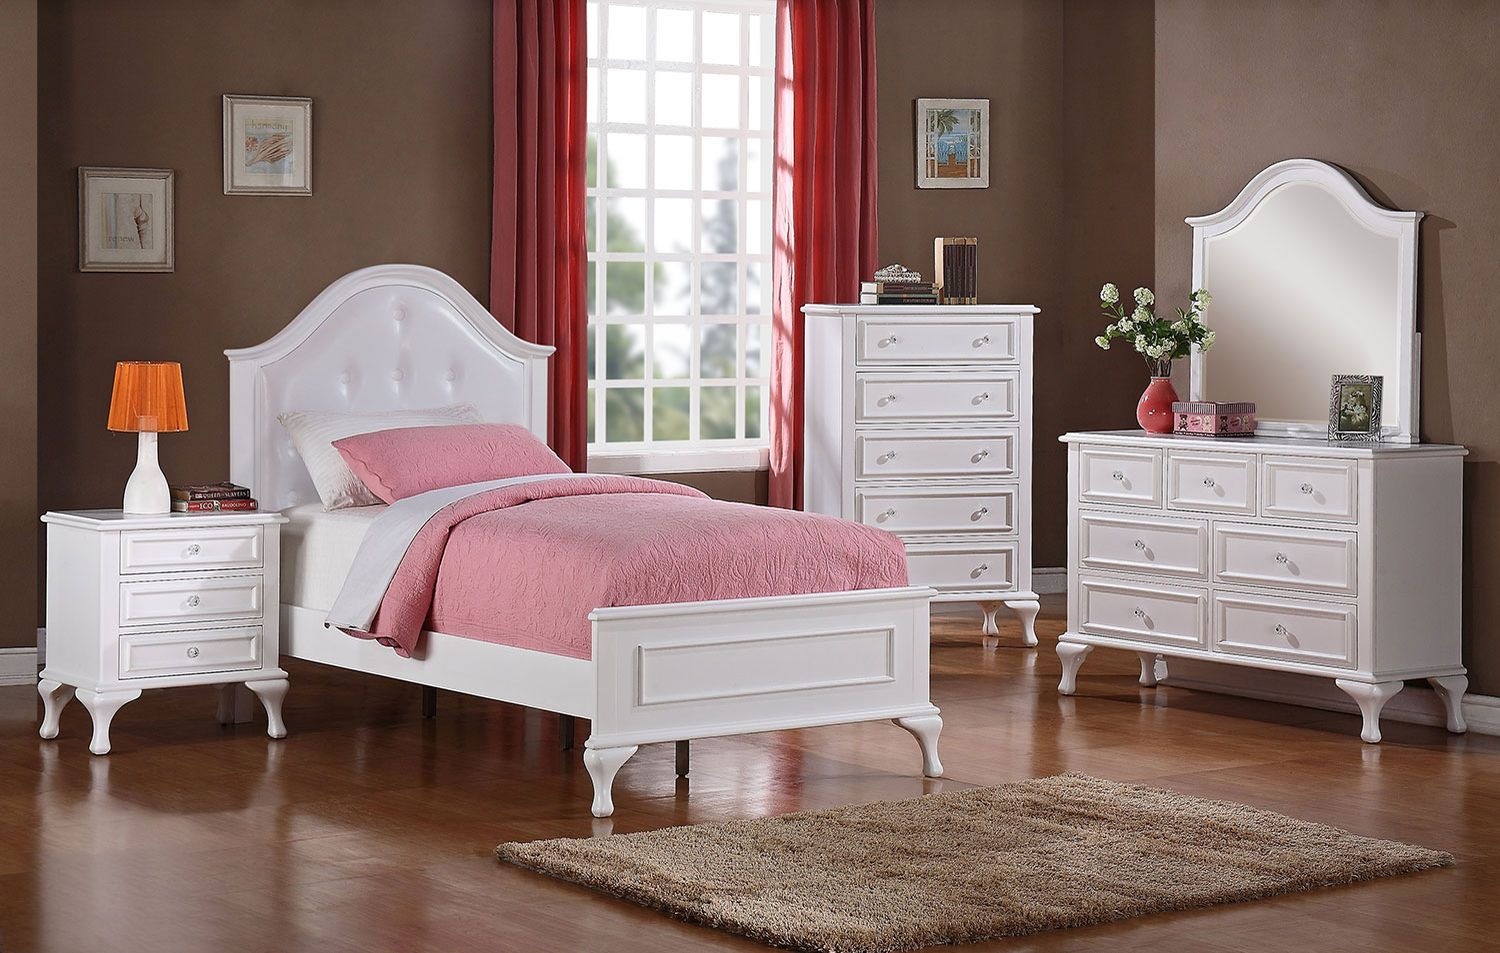 Kids Furniture - Riva 4-Piece Full Bedroom Set with Dresser, Mirror and Nightstand - White